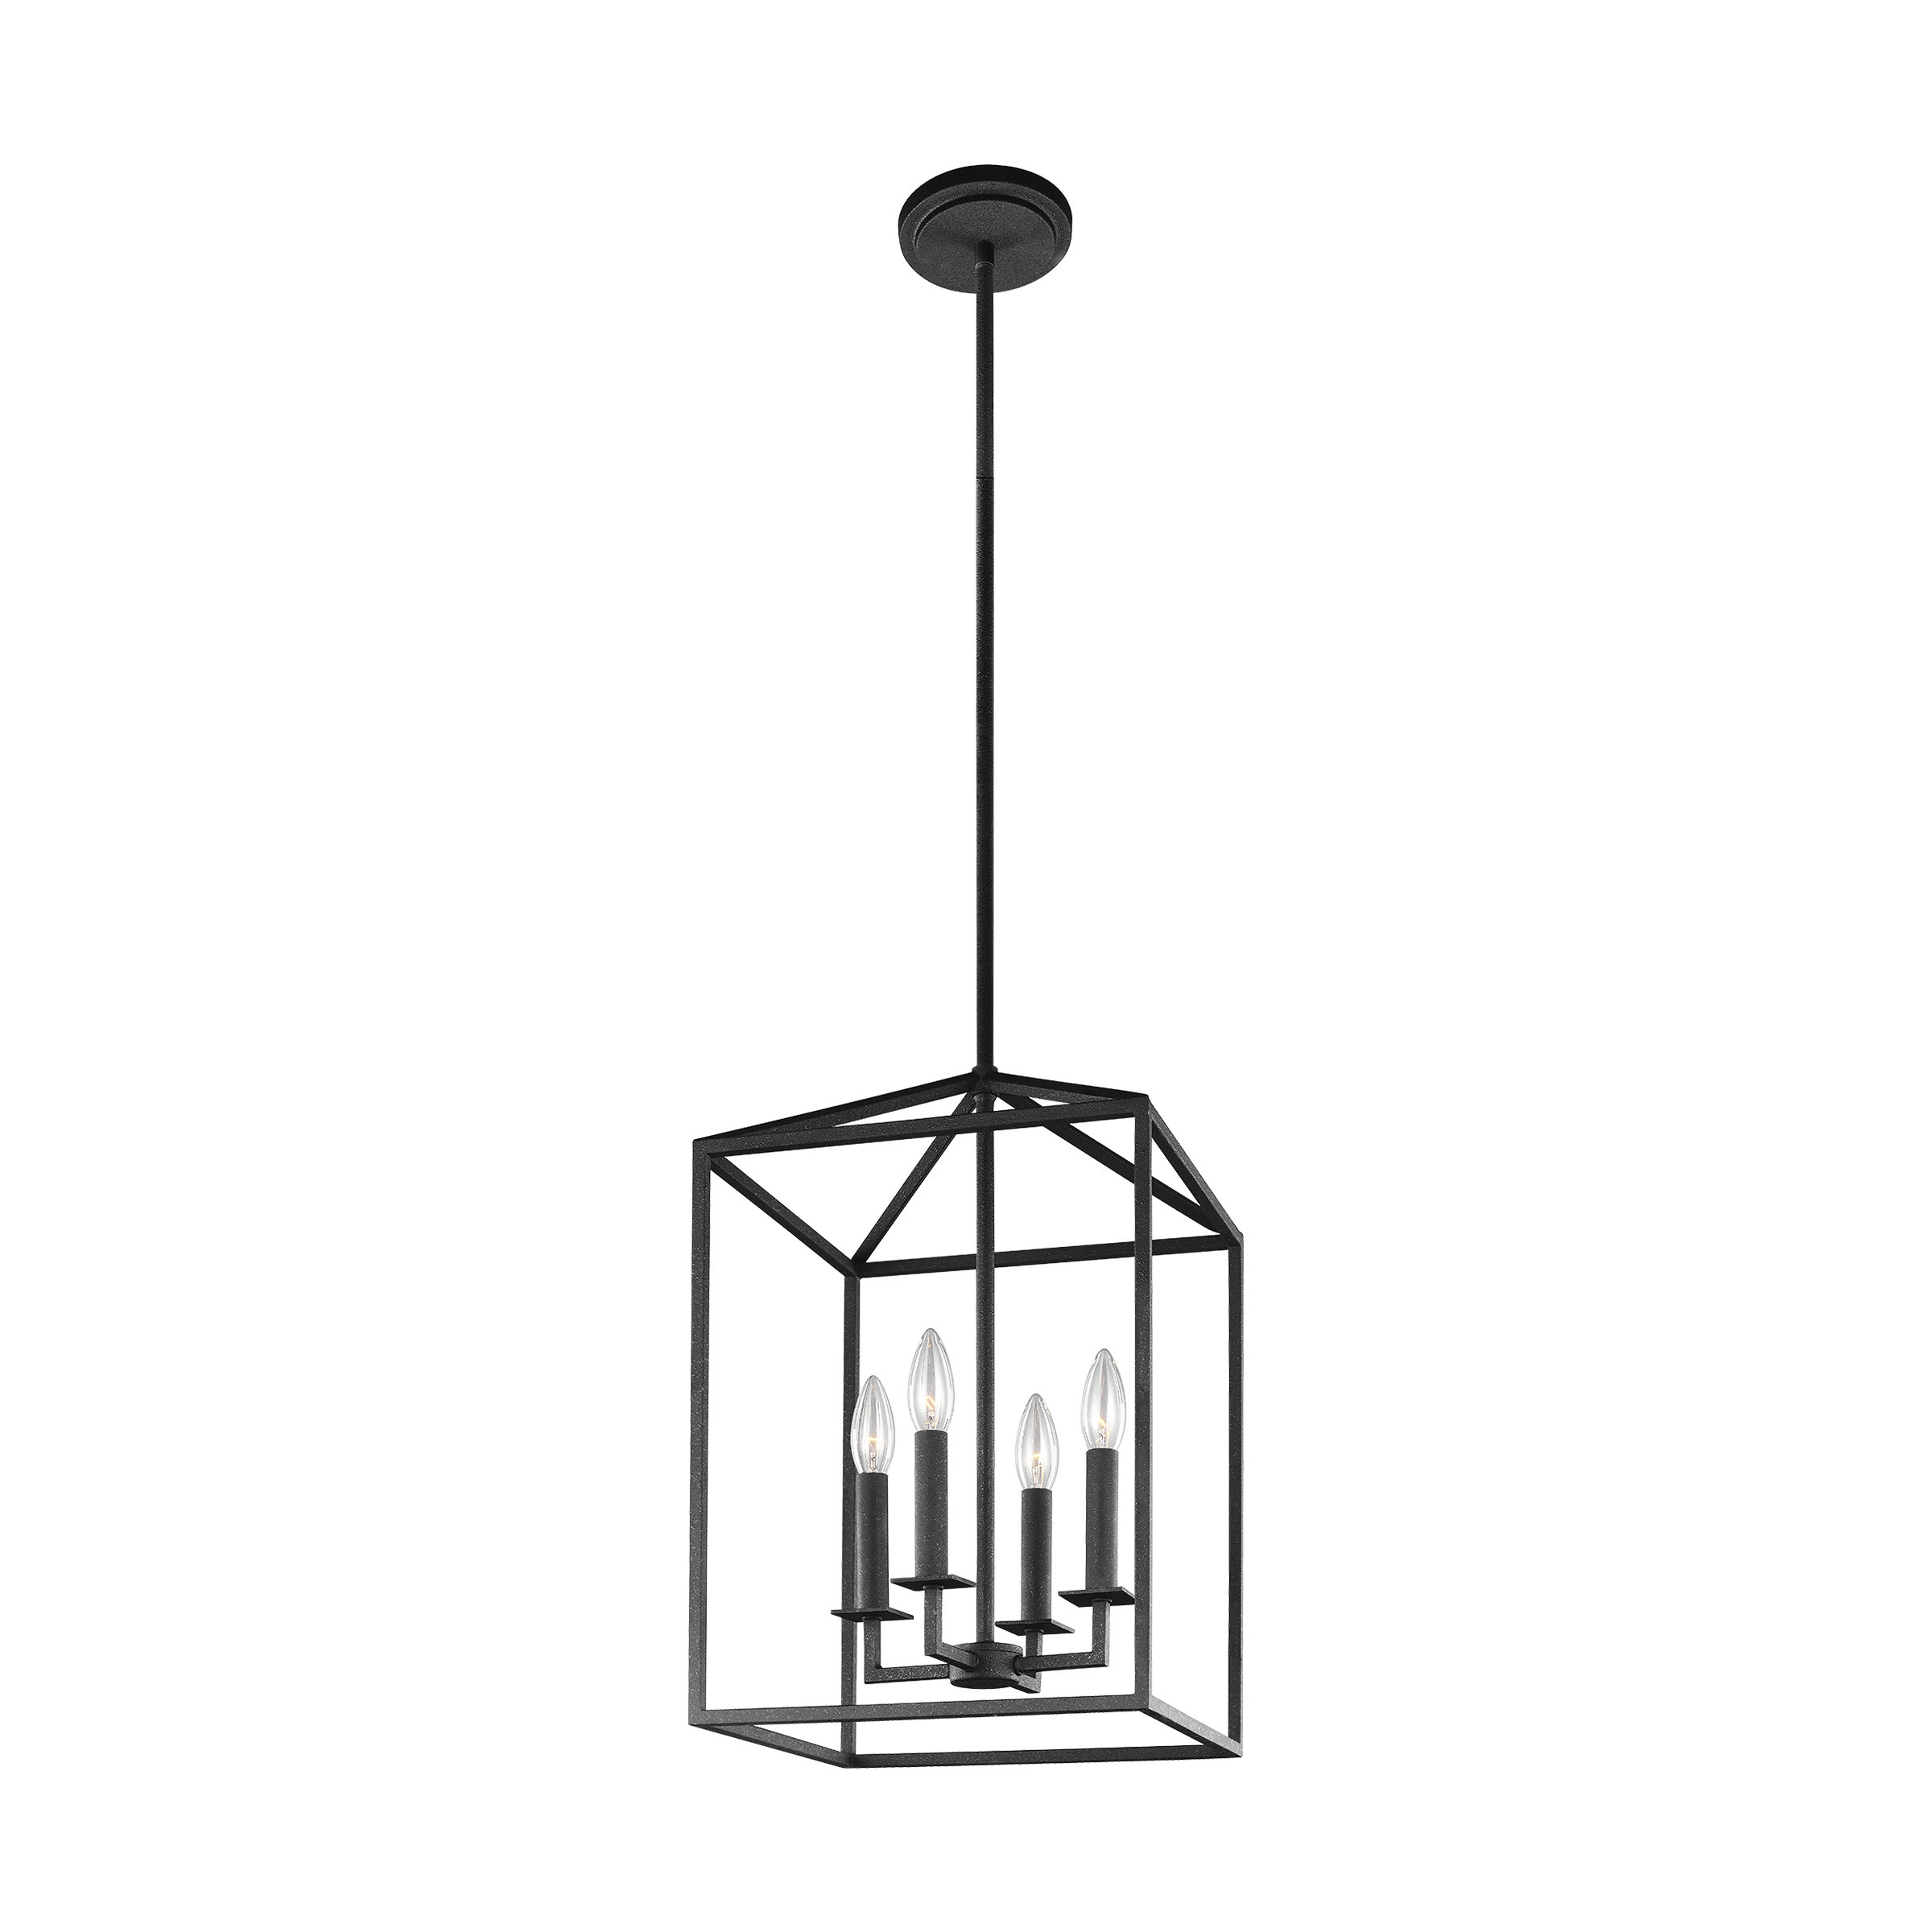 Odie 8 Light Kitchen Island Square / Rectangle Pendants With Regard To Most Up To Date Odie 4 Light Lantern Square / Rectangle Pendant (View 9 of 20)